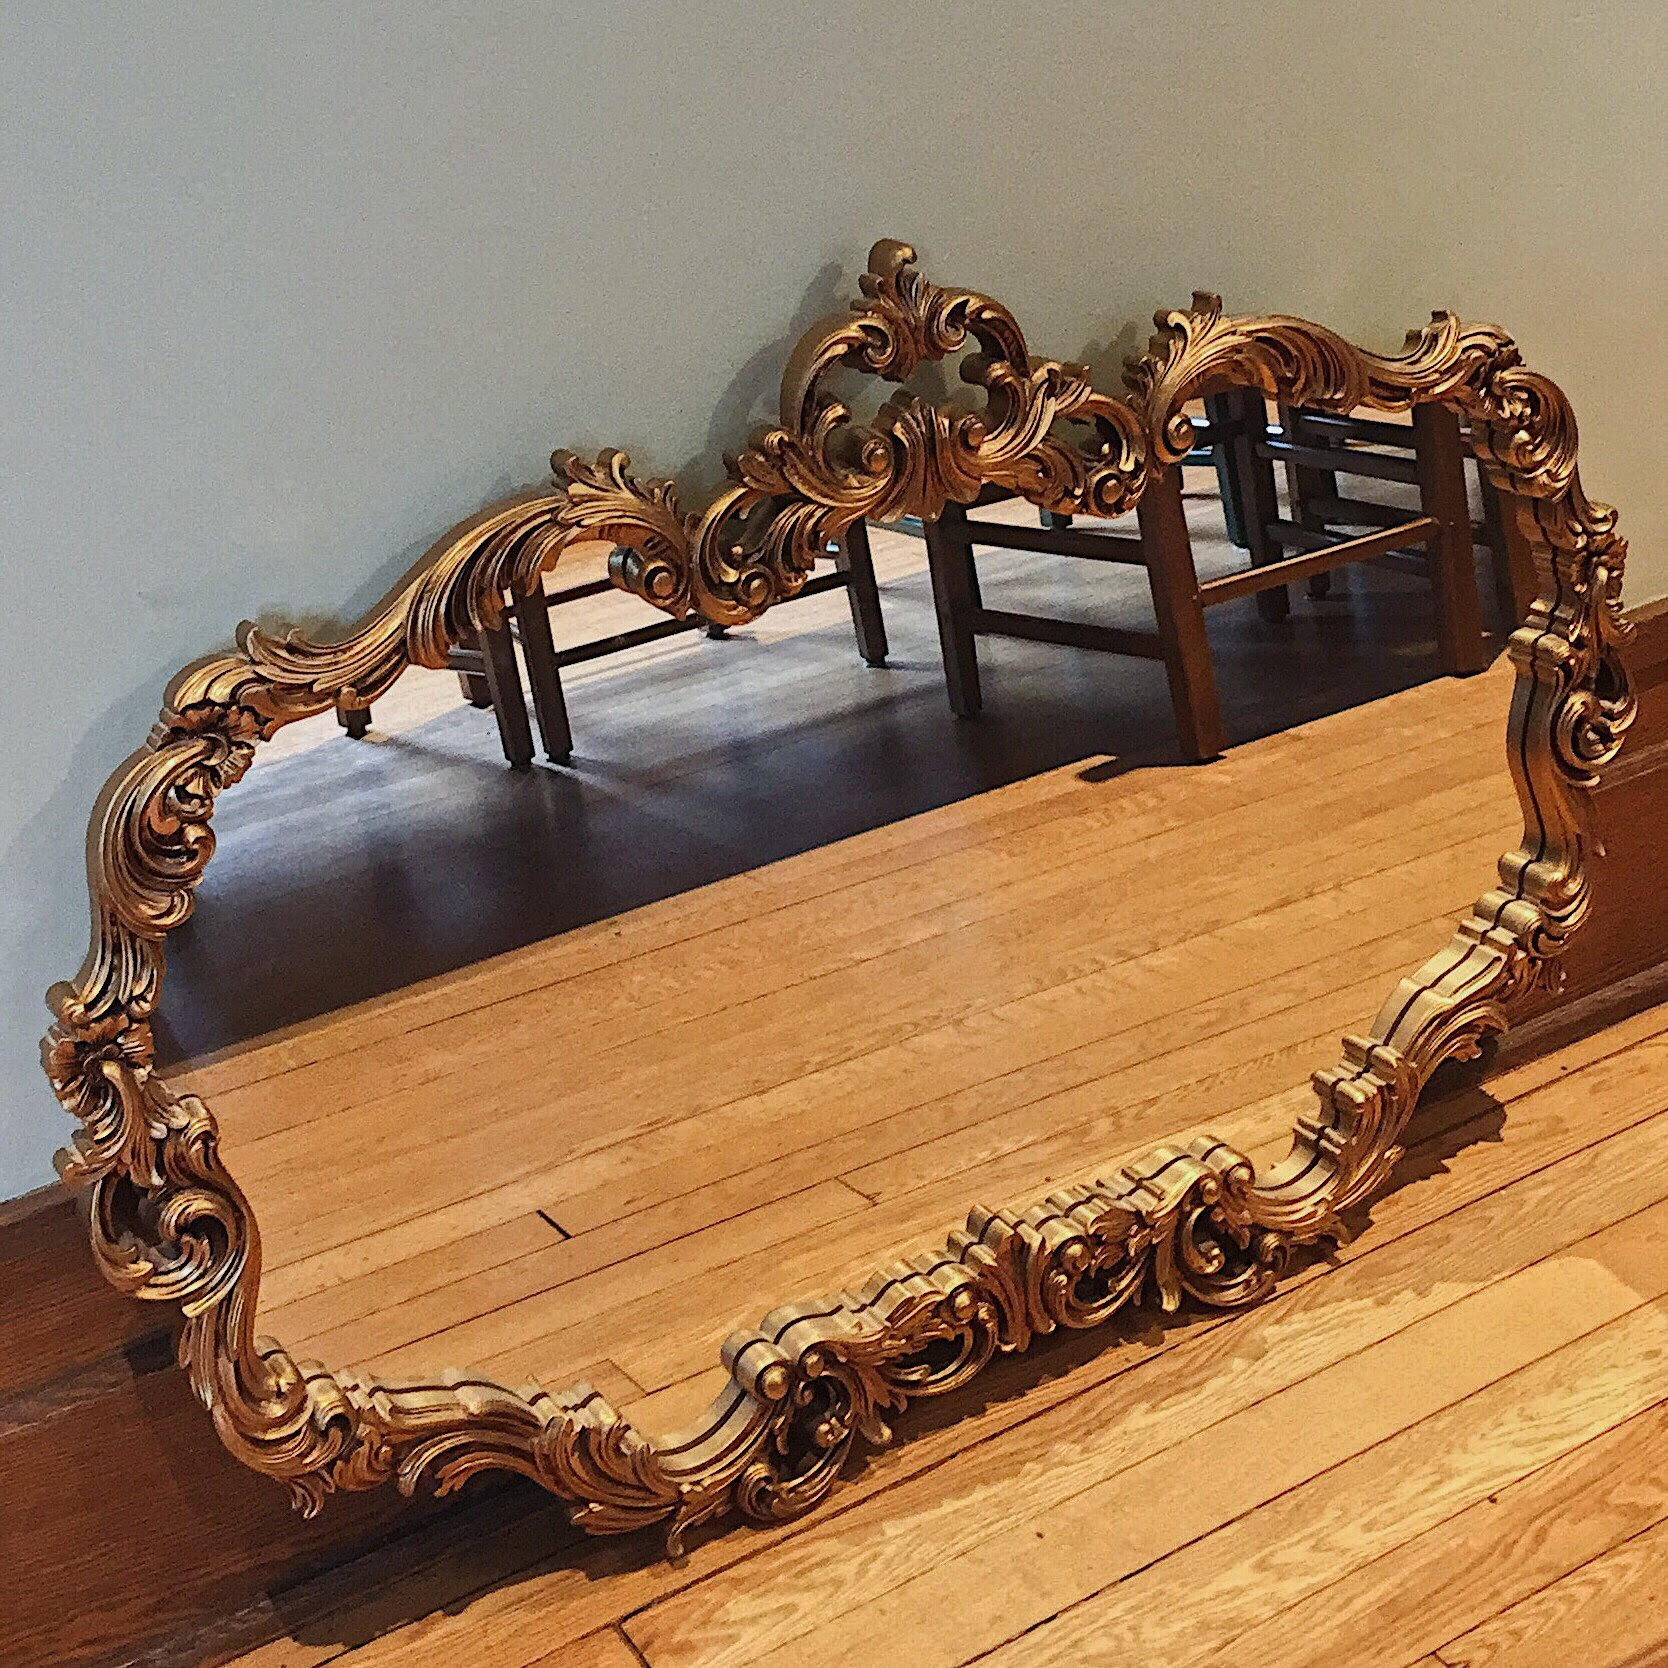 Ornate-Gold-Vintage-Mirror.jpg